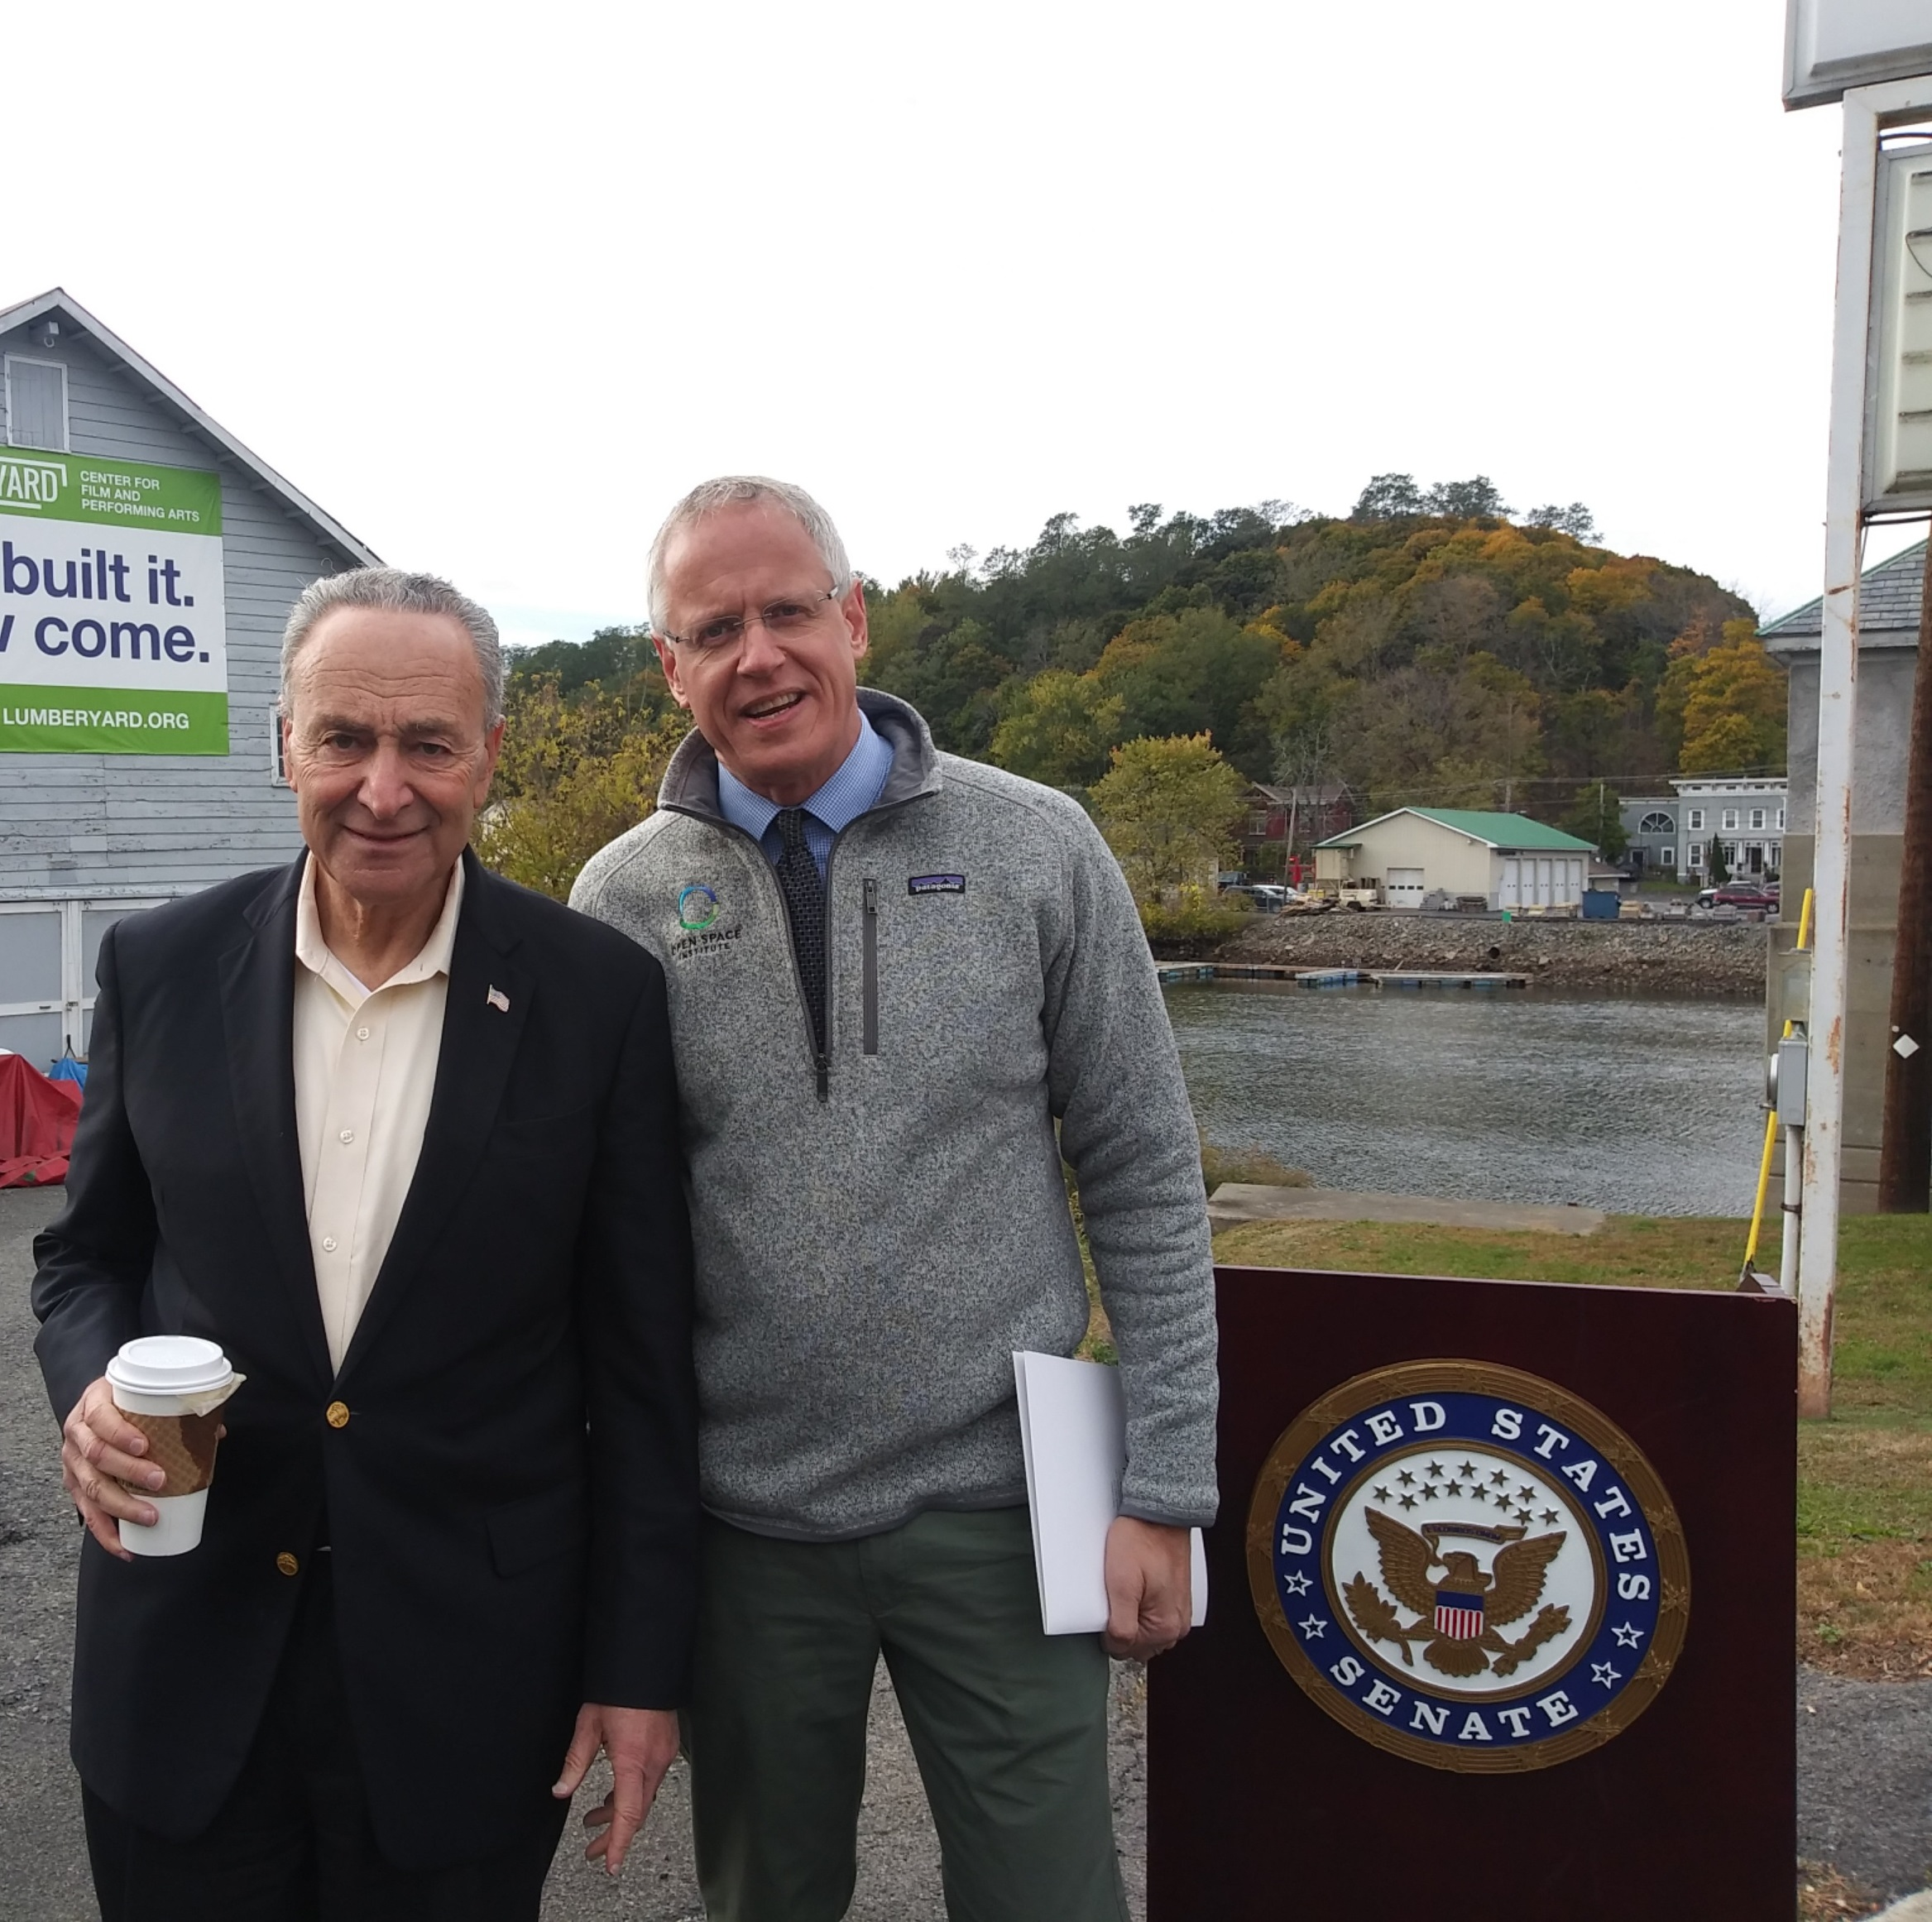 Senator Chuck Schumer (left) with the Senior Vice President of the Open Space Institute Erik Kulleseid.